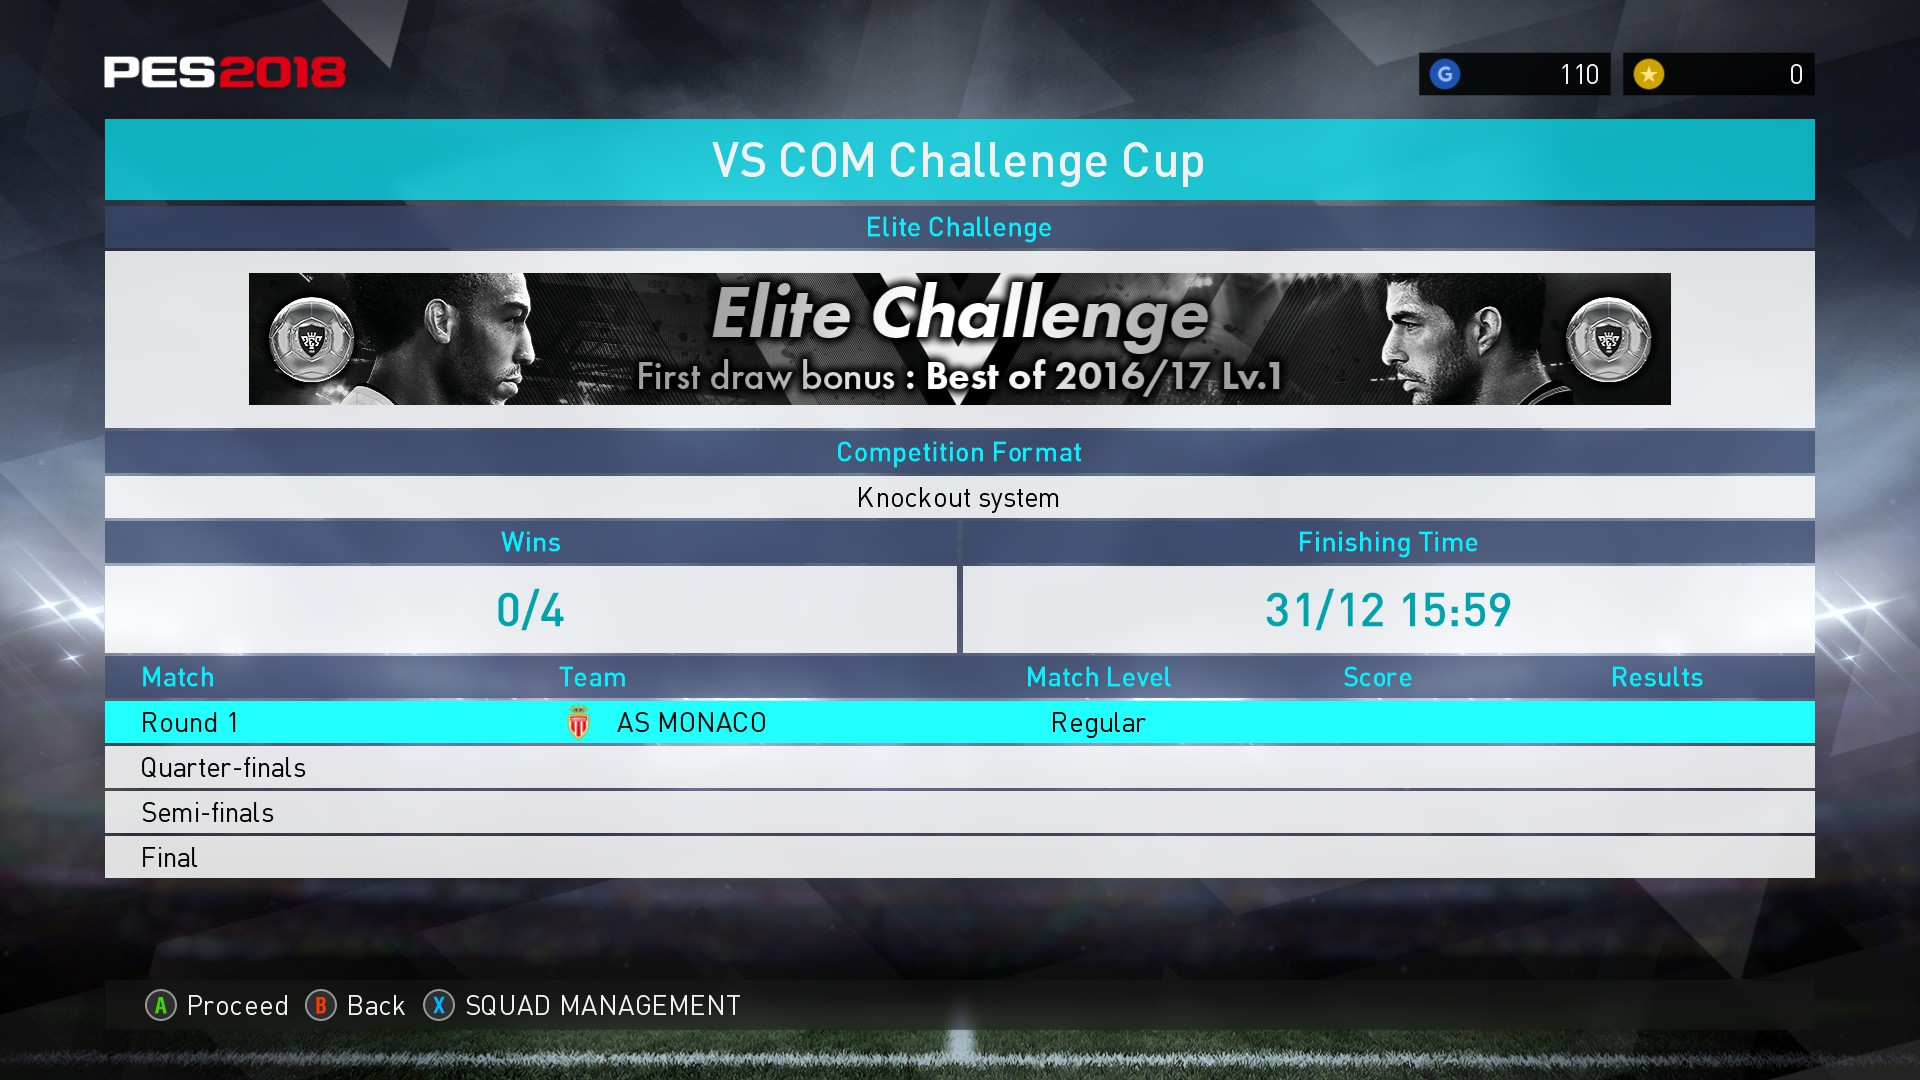 """We want to play against Monaco on Regular so we start the Silver """"Elite challenge"""""""